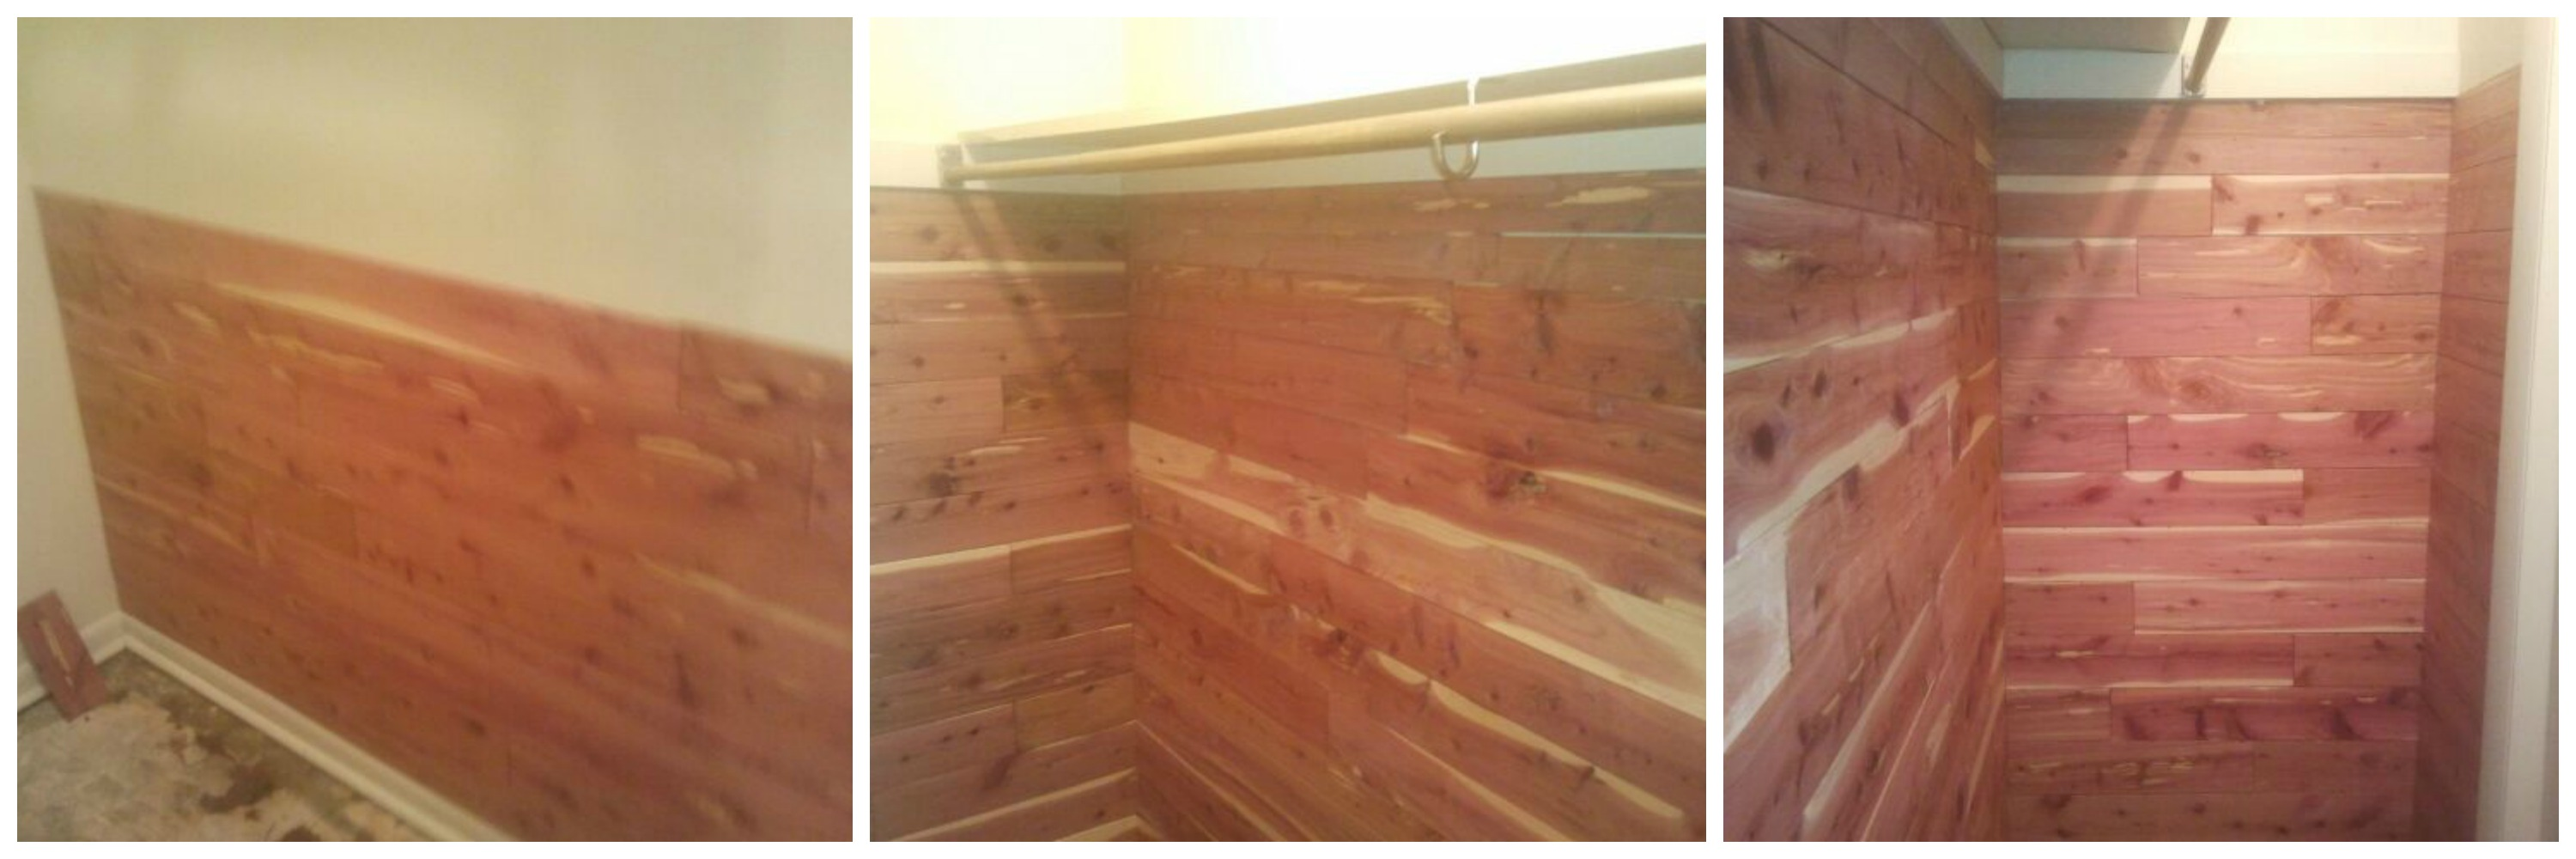 Cedar Planks for Closets | Cedar Closet Kit | Cedar Wood Closet Lining